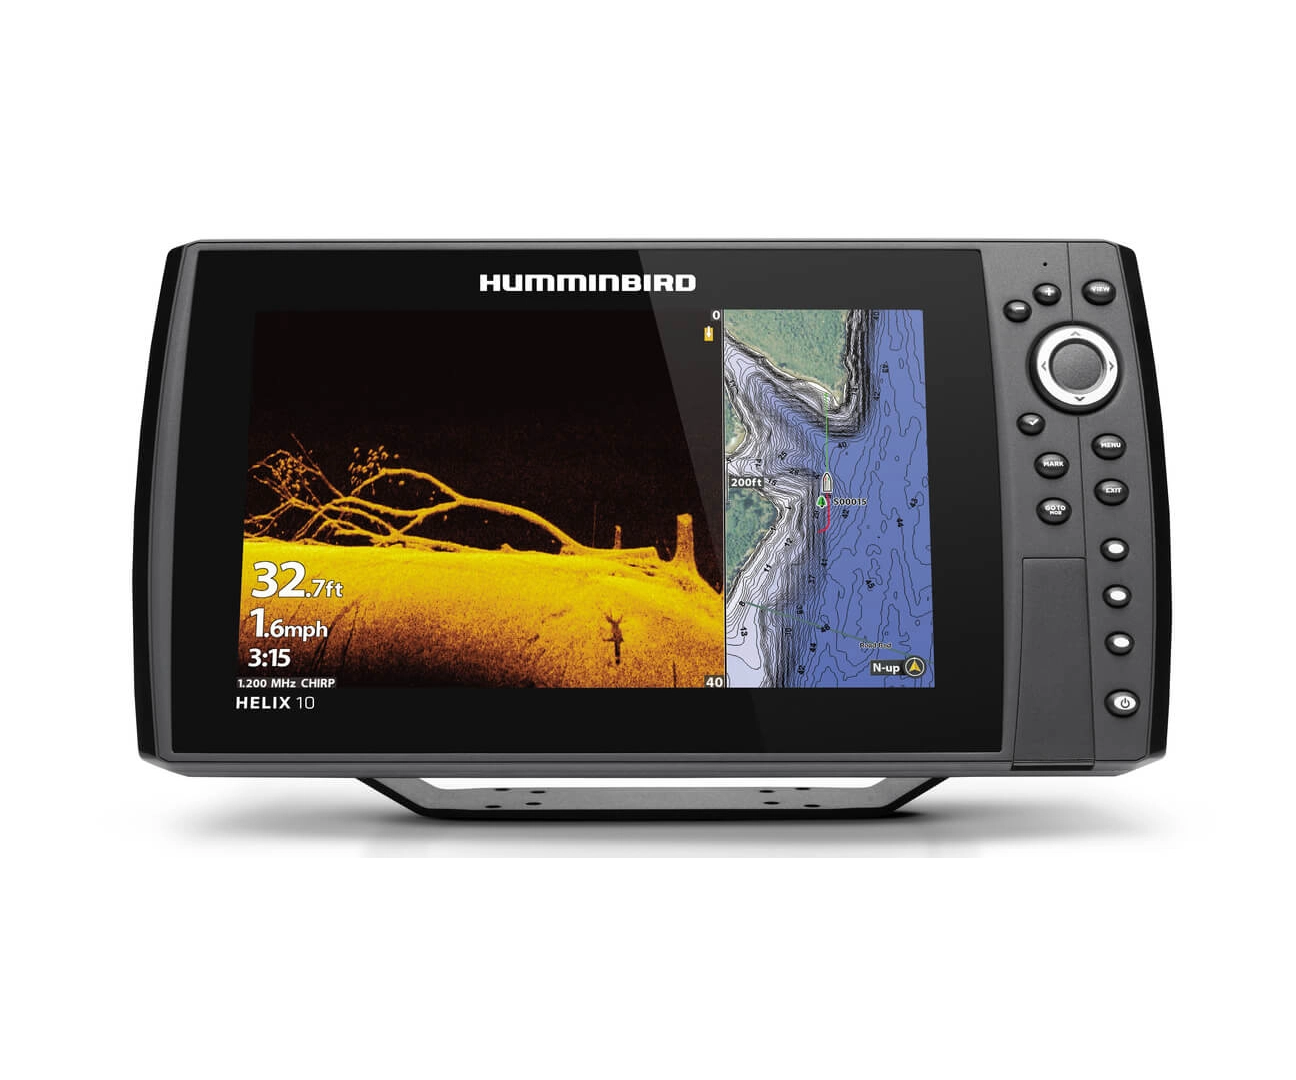 humminbird helix g3n resize - Magasin (d'accastillage)